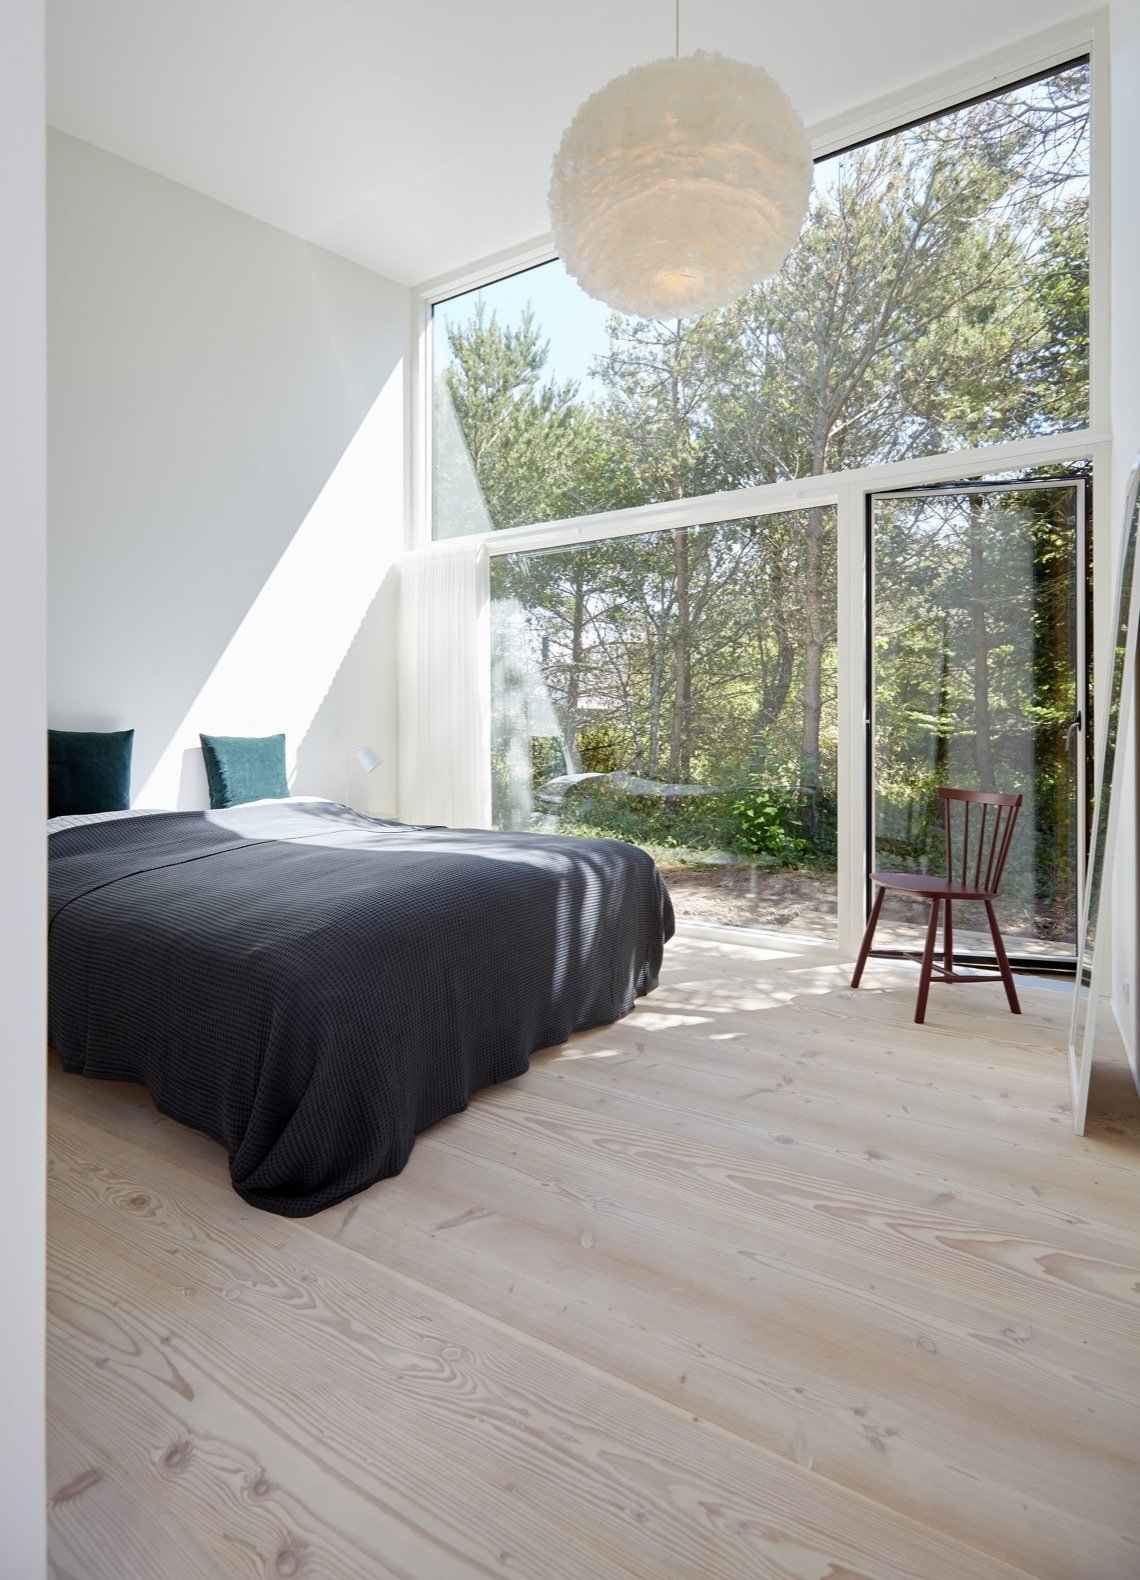 Bedroom, Bed, Chair, Pendant, Light Hardwood, and Table A 16-foot-tall wall of glass opens the master bedroom to views of the forest.   Best Bedroom Light Hardwood Pendant Photos from Revel in Scandinavian Design at This Seaside Holiday Home